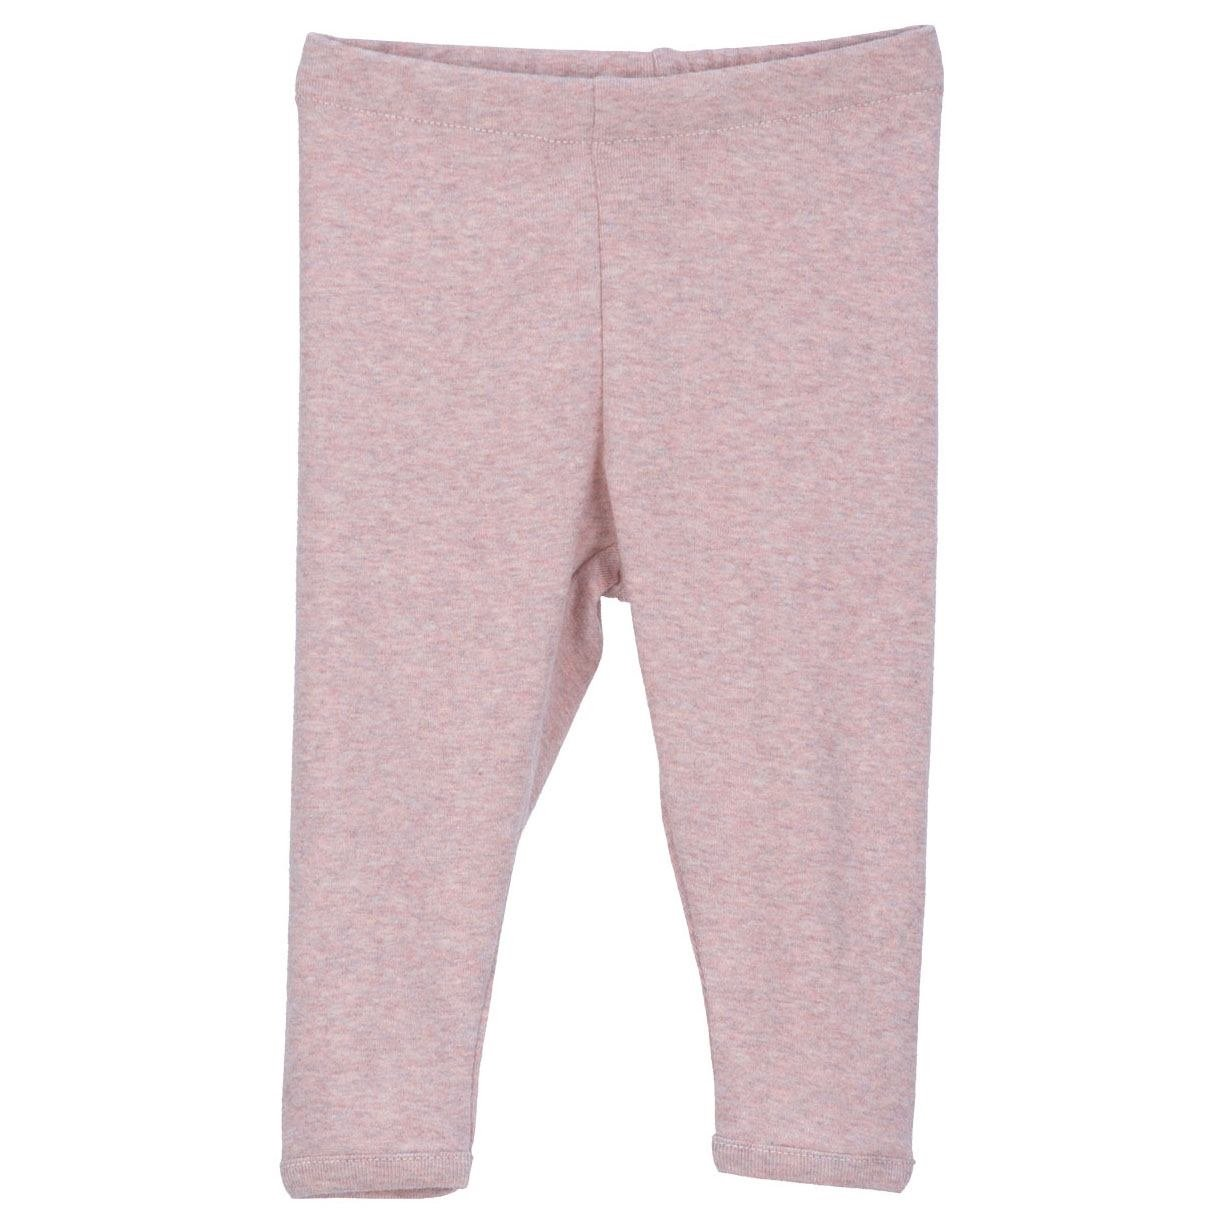 Image of   Serendipity bukser / leggings - Powder